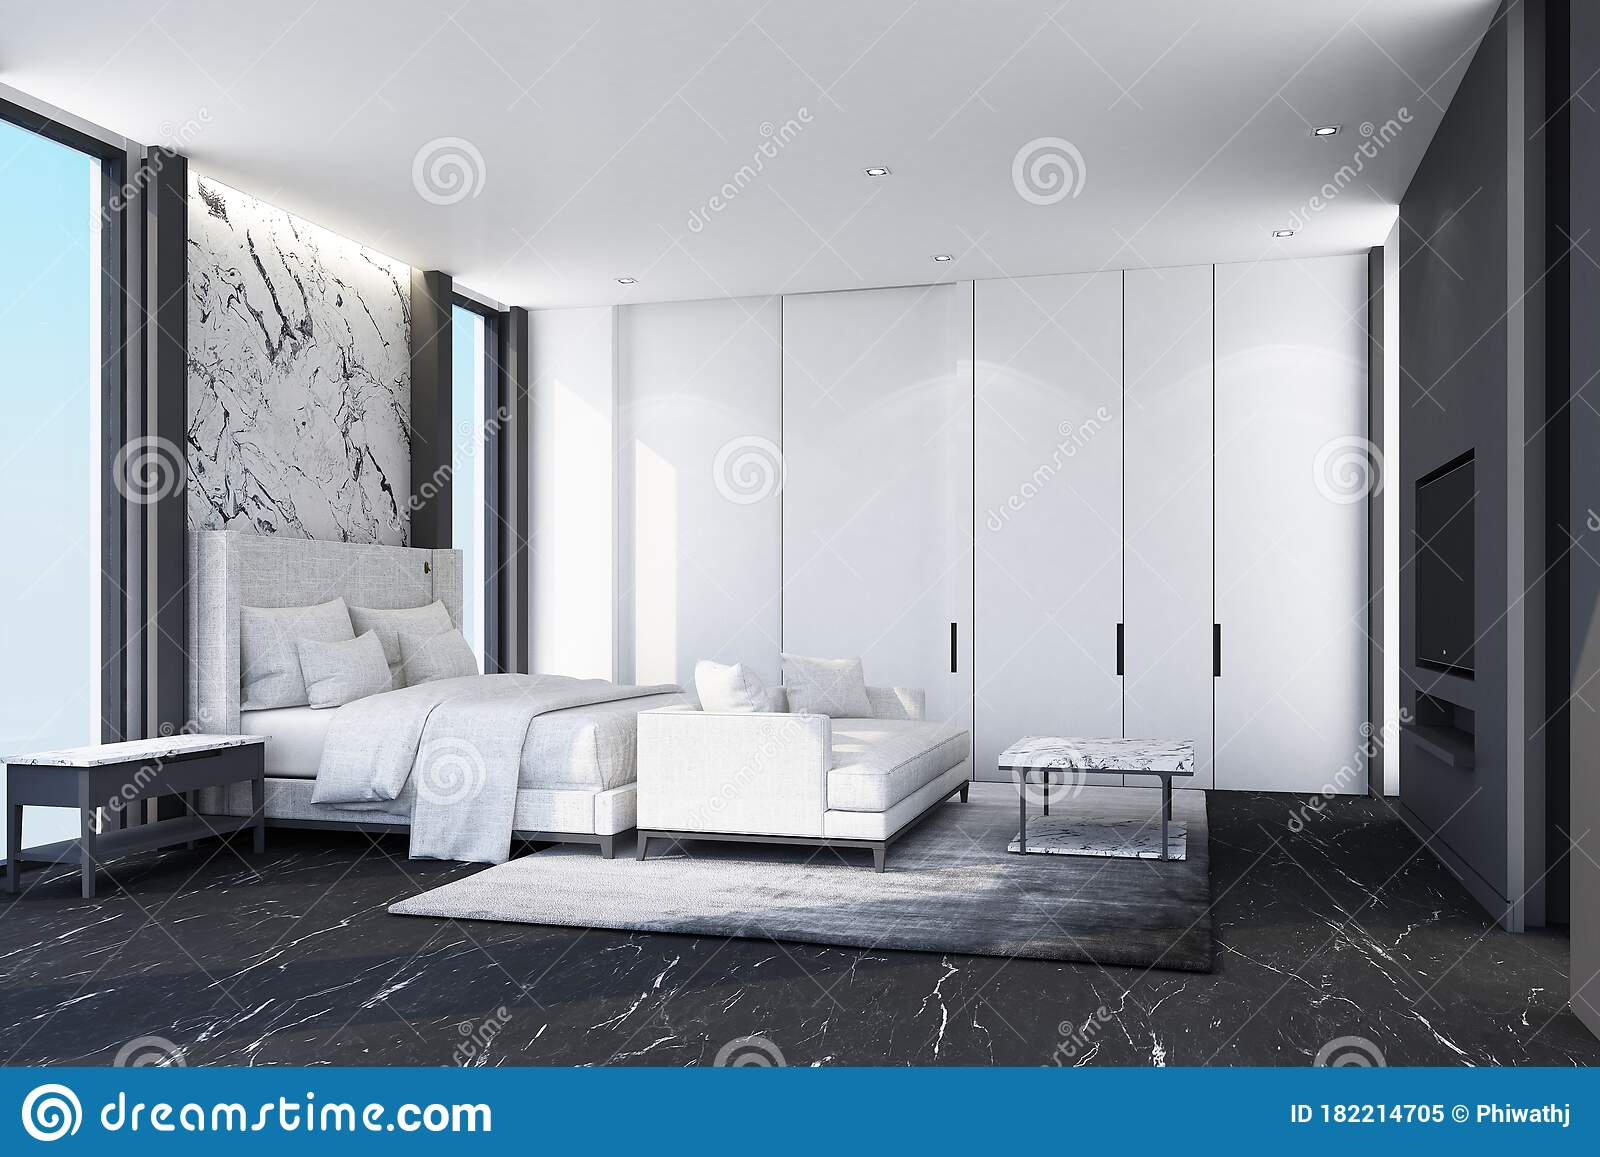 Modern White House Bedroom Marble Floor Stock Illustrations 254 Modern White House Bedroom Marble Floor Stock Illustrations Vectors Clipart Dreamstime